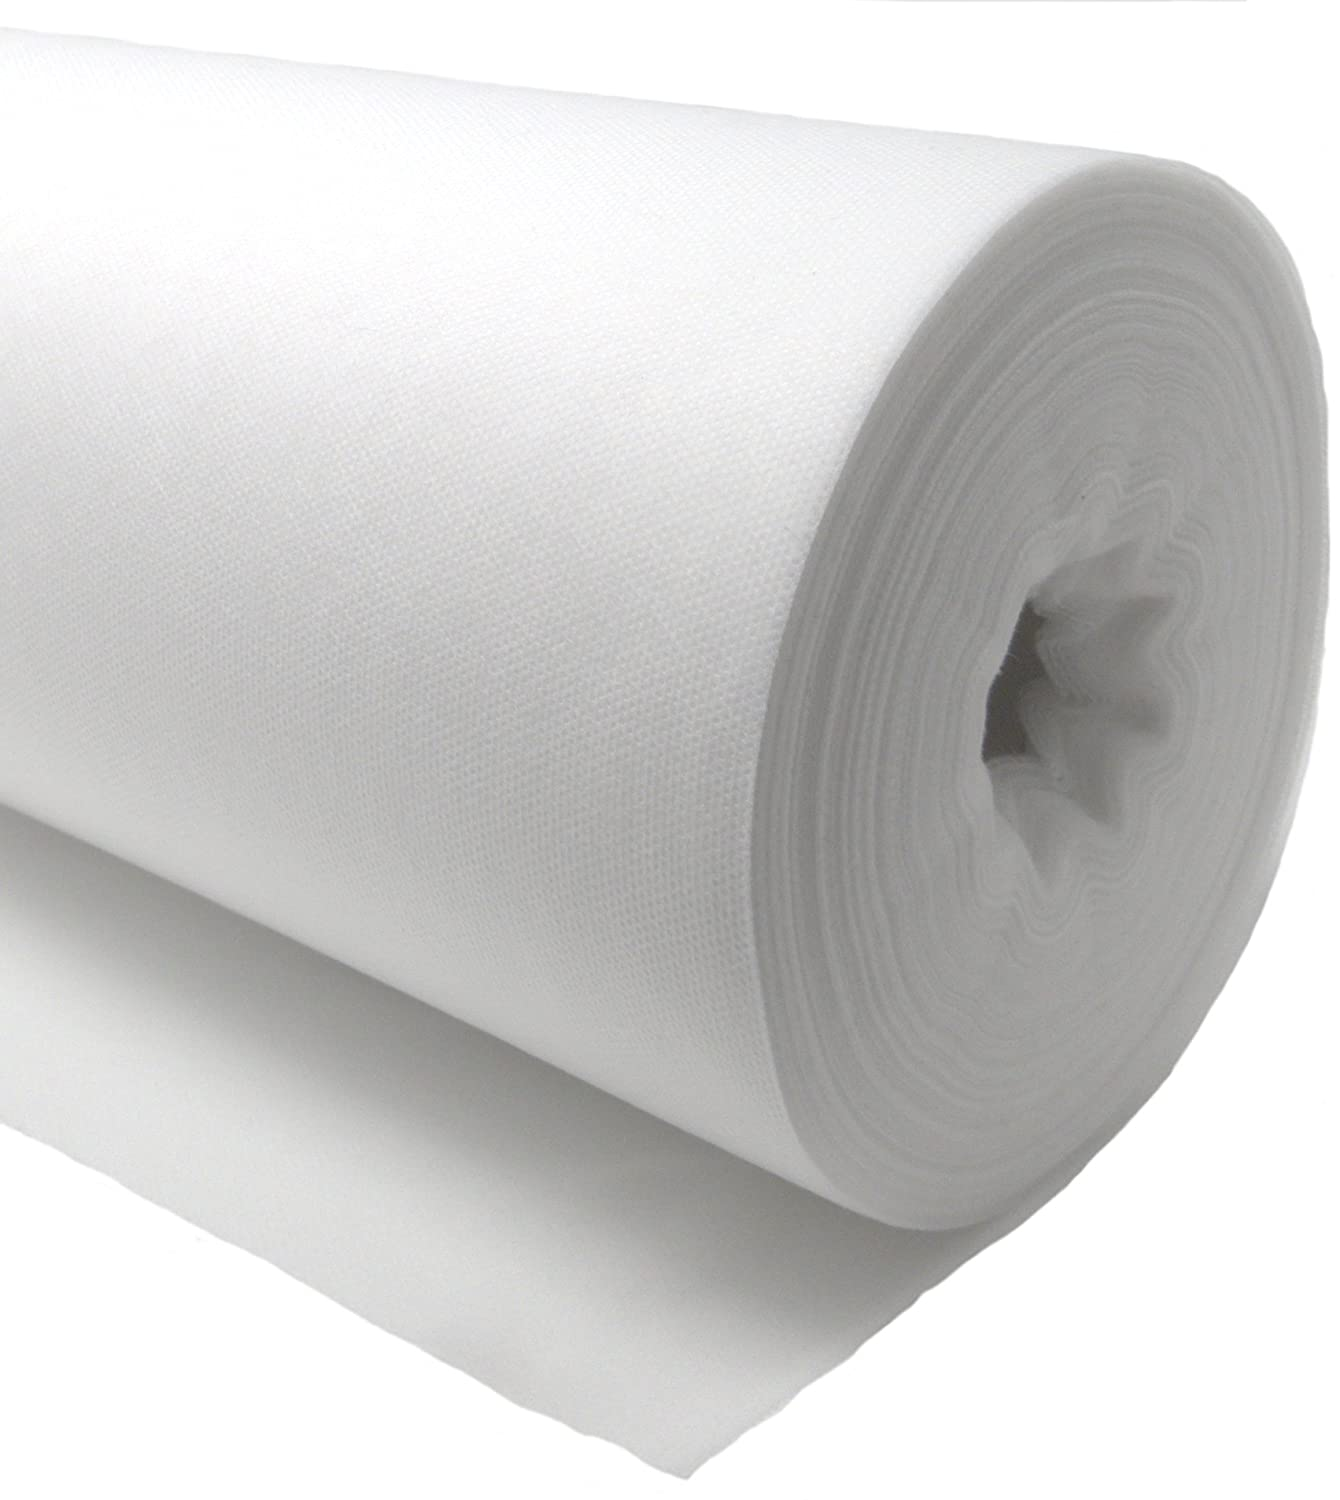 Axomi White Disposable Non-Woven Exam Bed Cover 1 Perforated Roll 55 Sheets 24 inches x 330 Feet